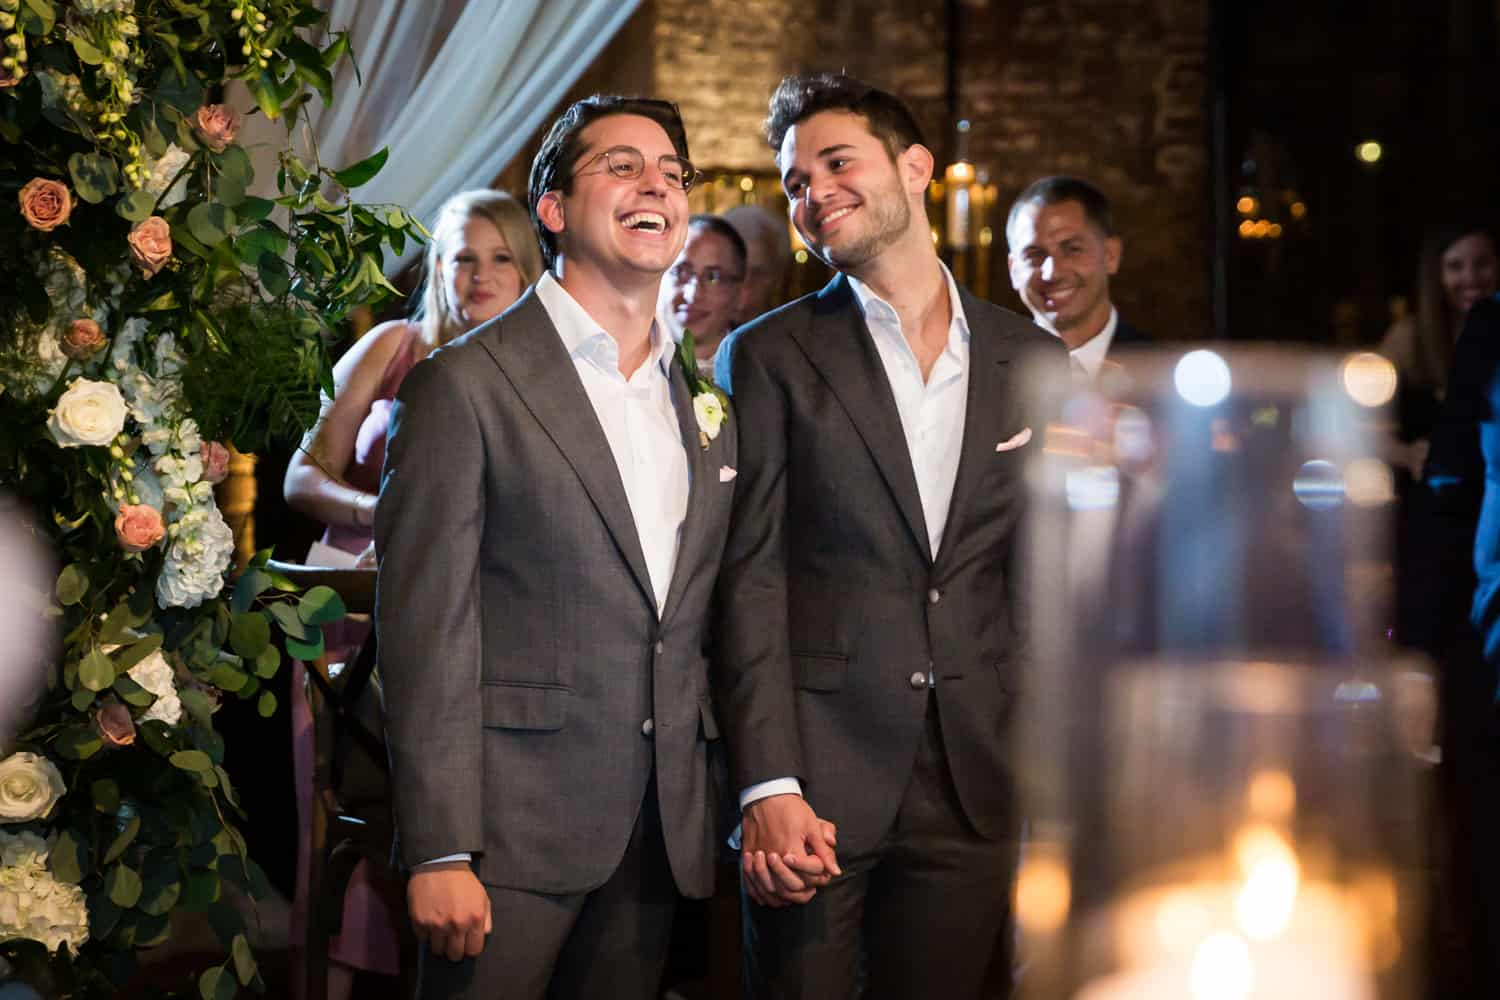 Greenpoint Loft wedding photos of two grooms listening to speeches